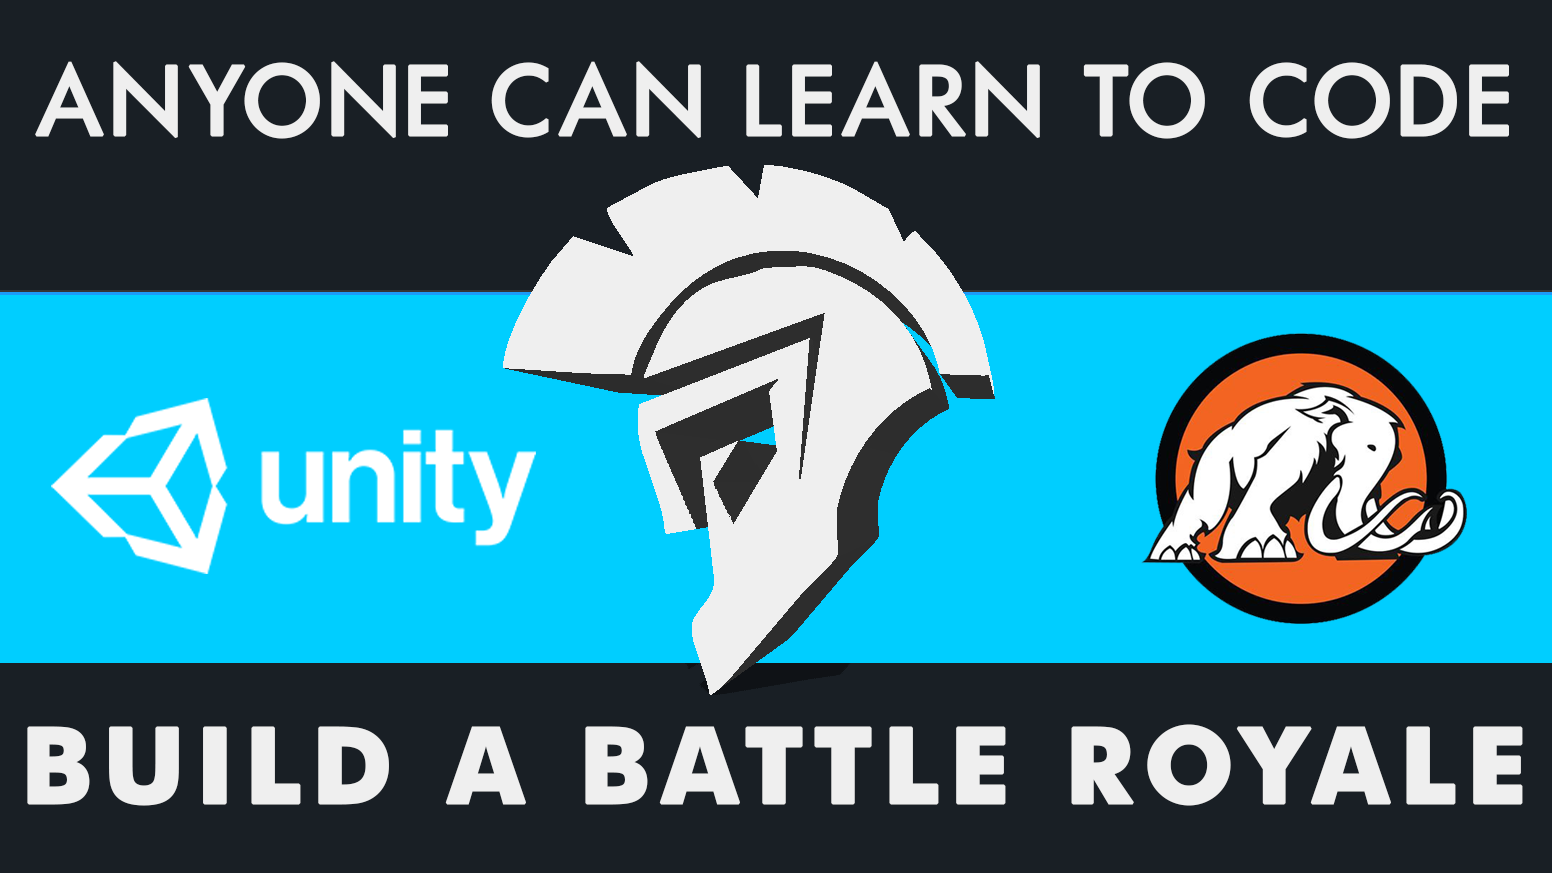 Anyone Can Make A Video Game Build A Battle Royale In Unity By